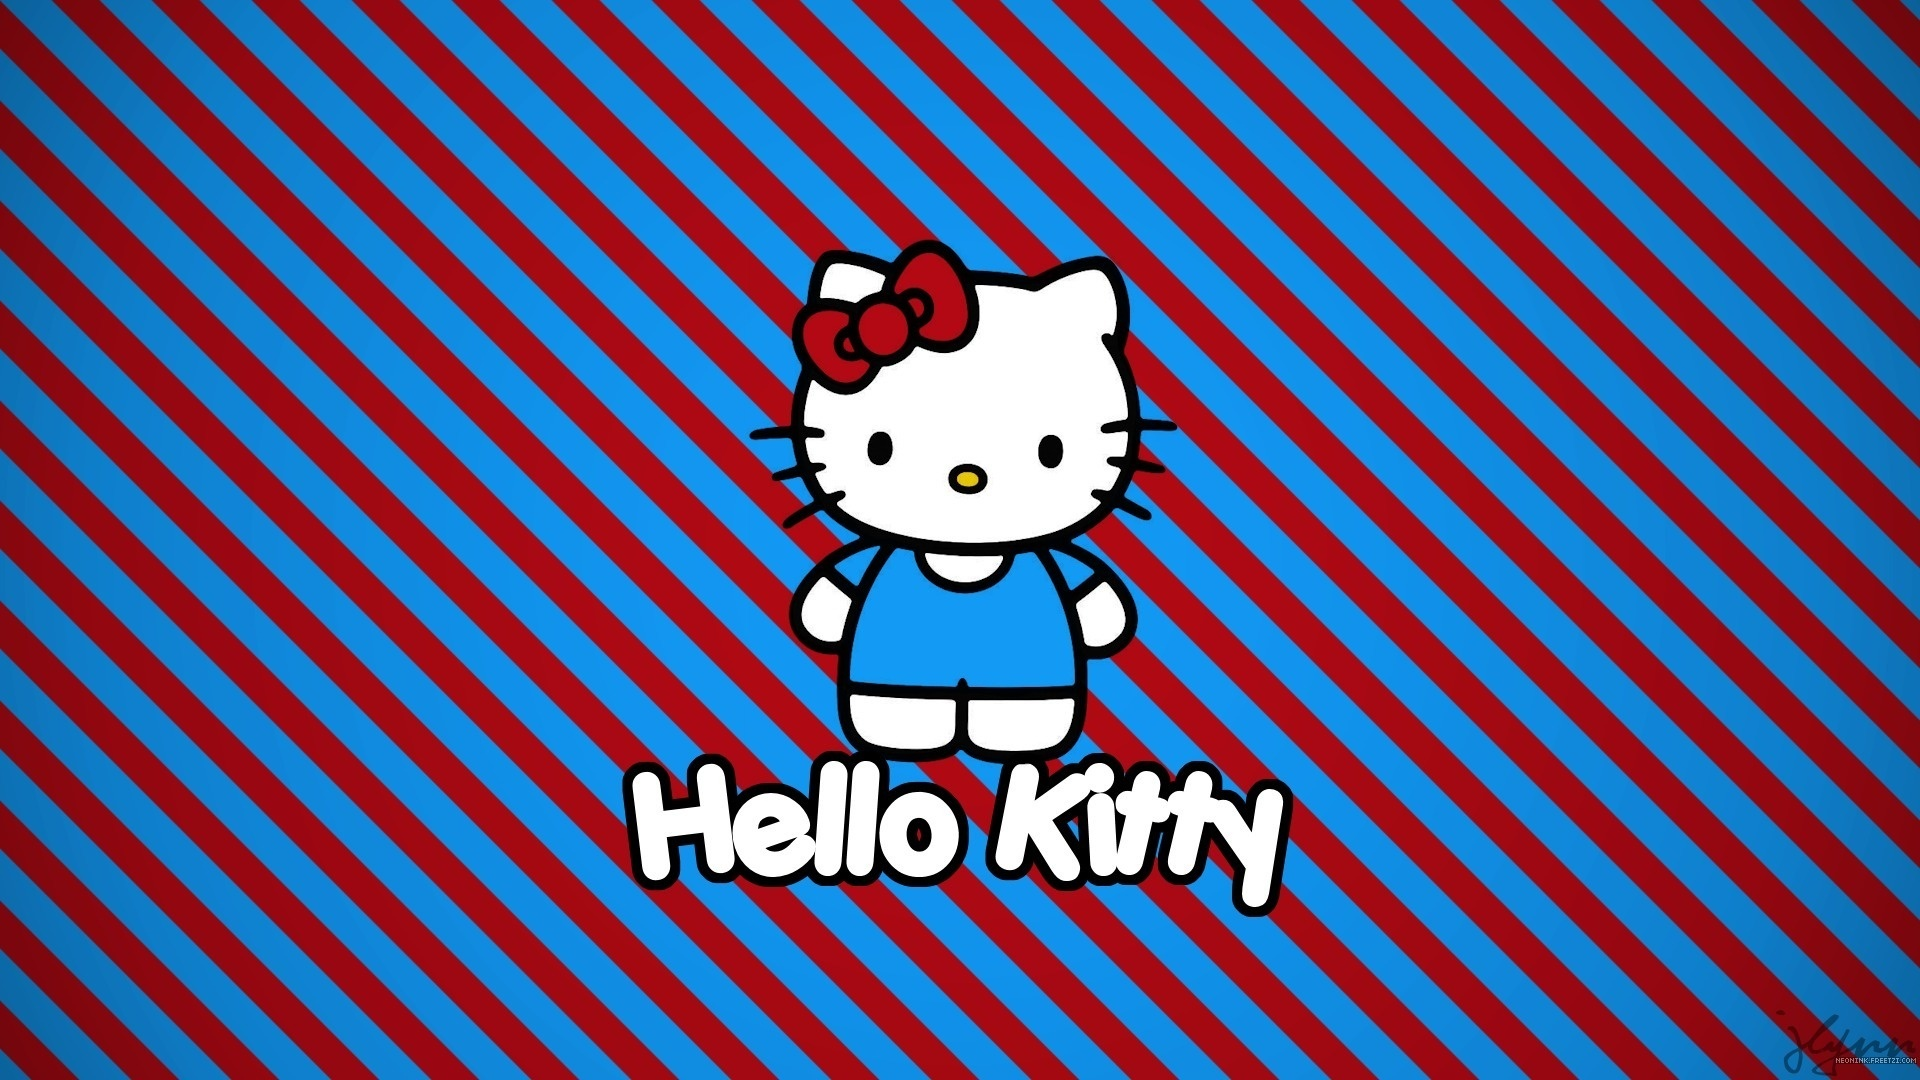 Hello kitty full hd fondo de pantalla and fondo de escritorio anime hello kitty fondo de pantalla voltagebd Images